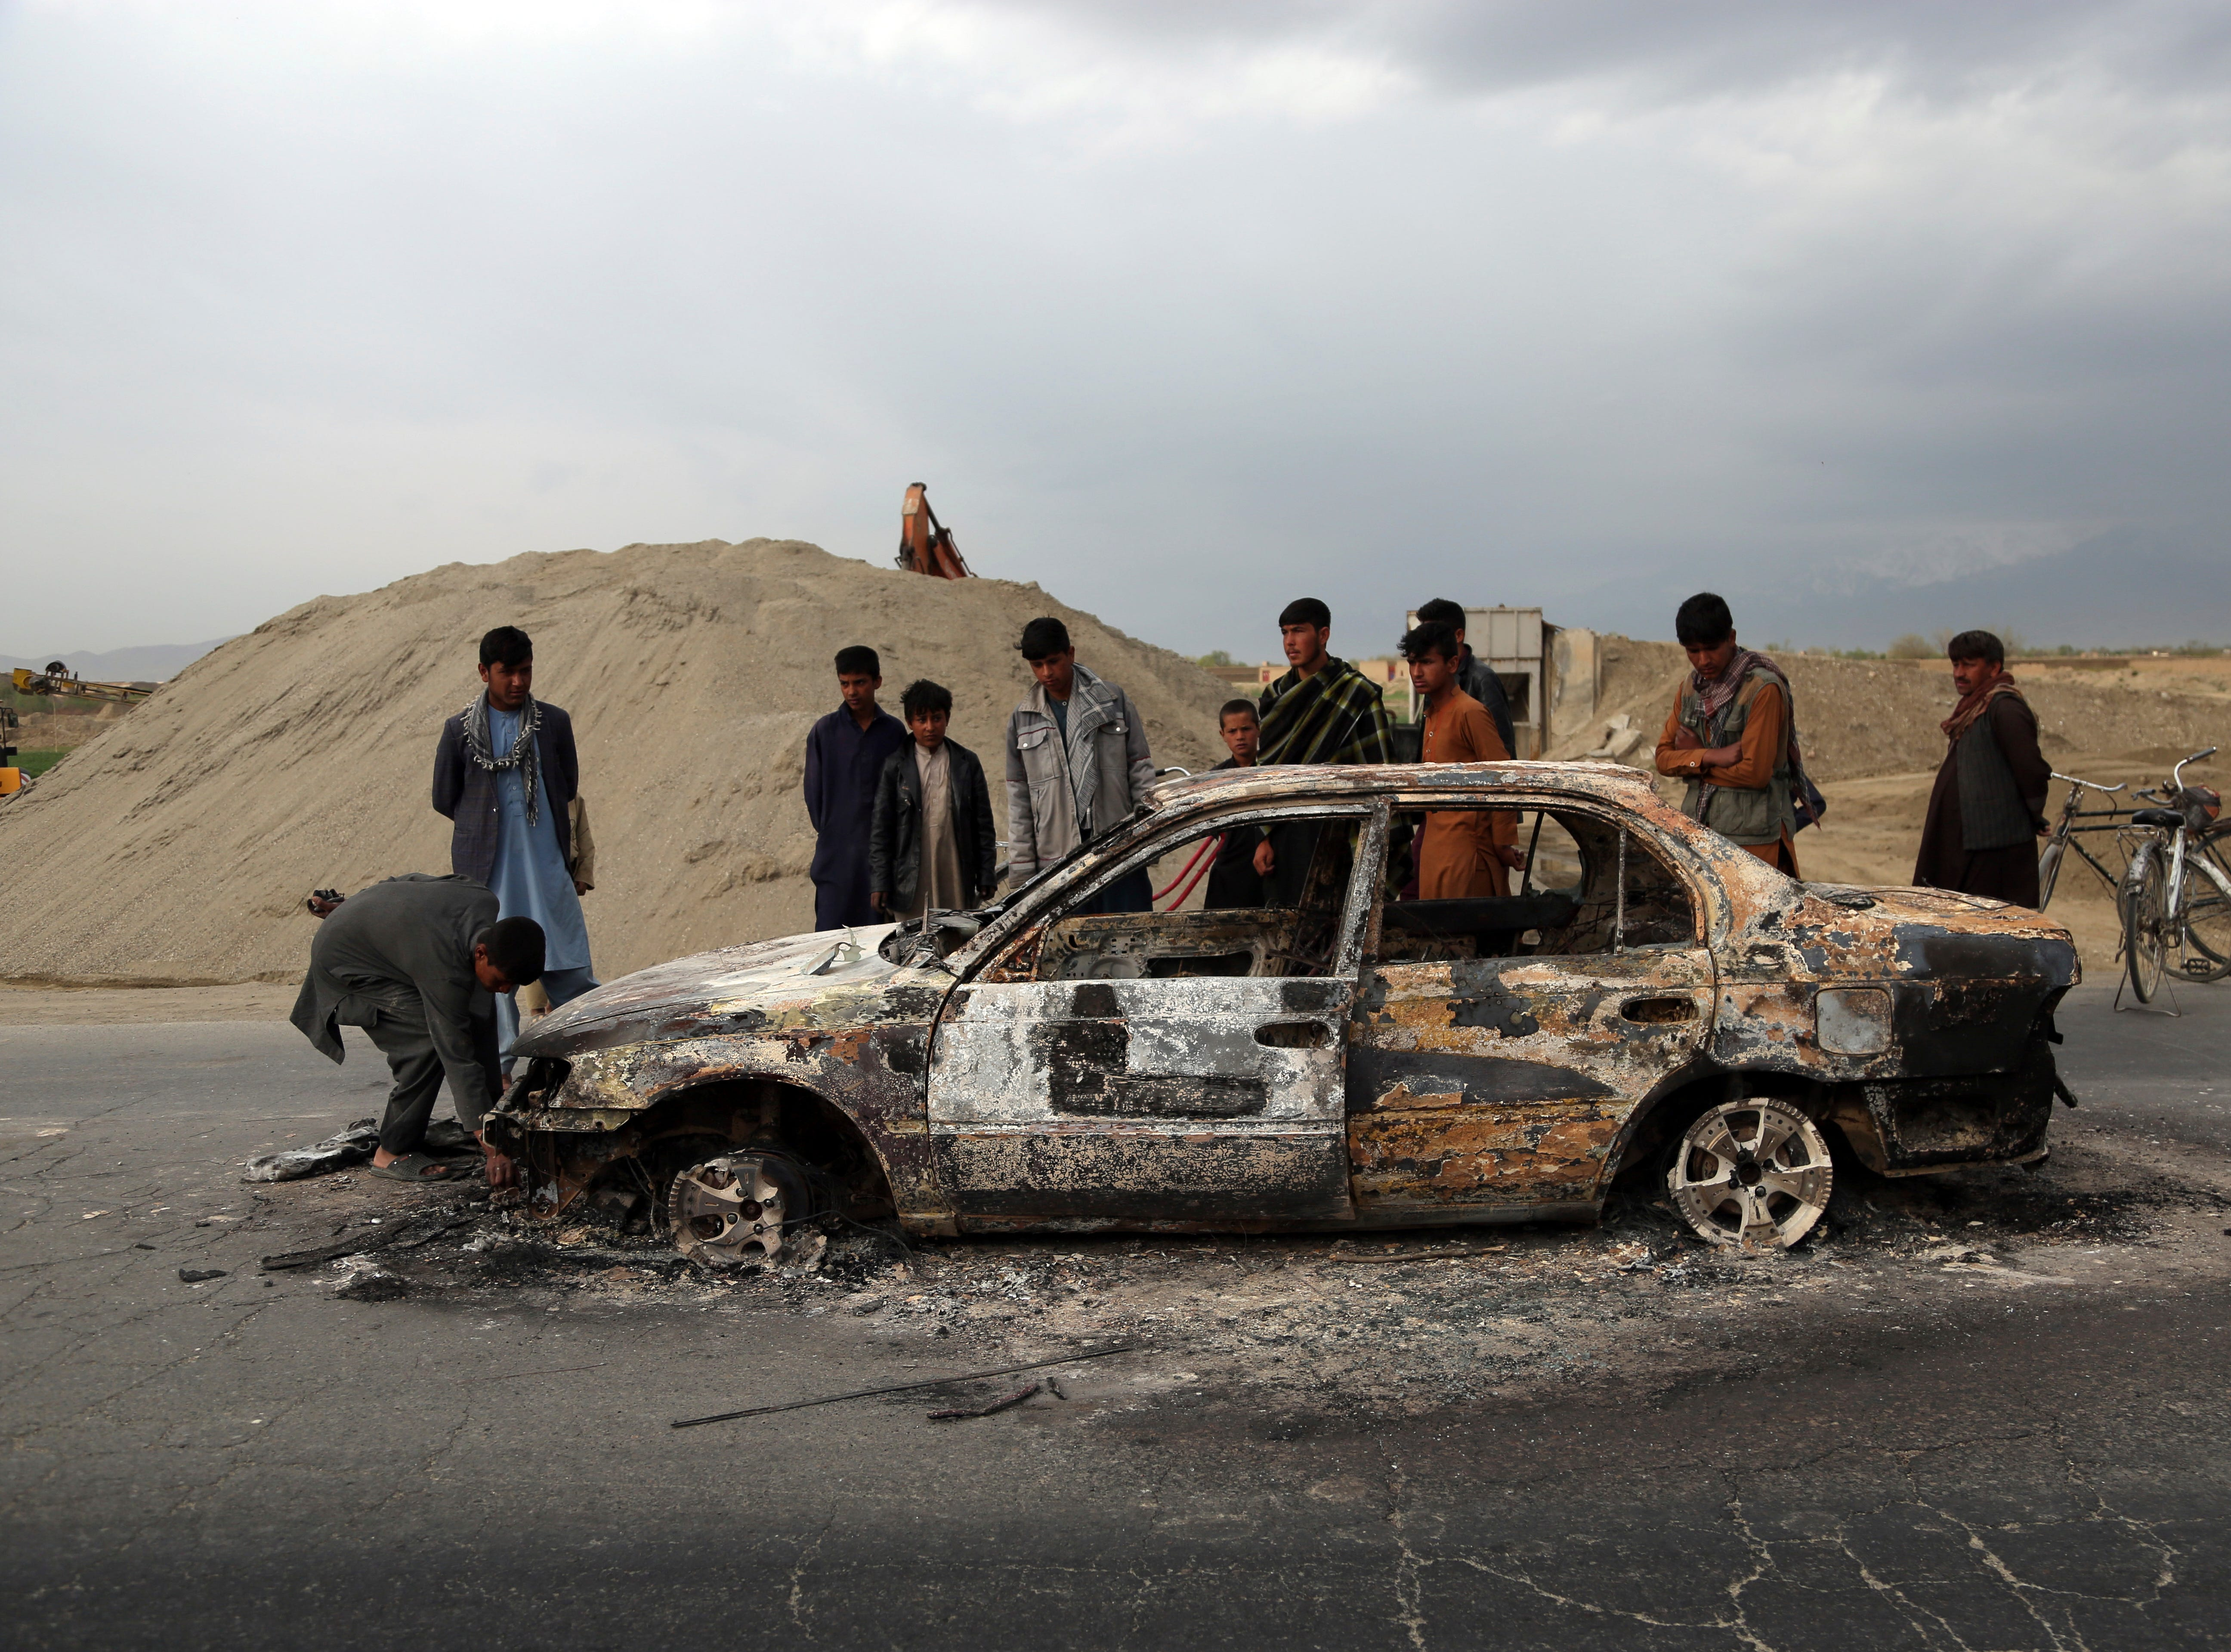 Afghans watch a civilian vehicle burnt after being shot by US forces following an attack near the Bagram Air Base, north of Kabul, Afghanistan, Tuesday, April 9, 2019. Three American service members were killed when their convoy hit a roadside bomb on Monday near the main U.S. base in Afghanistan, the U.S. forces said. The Taliban claimed responsibility for the attack.